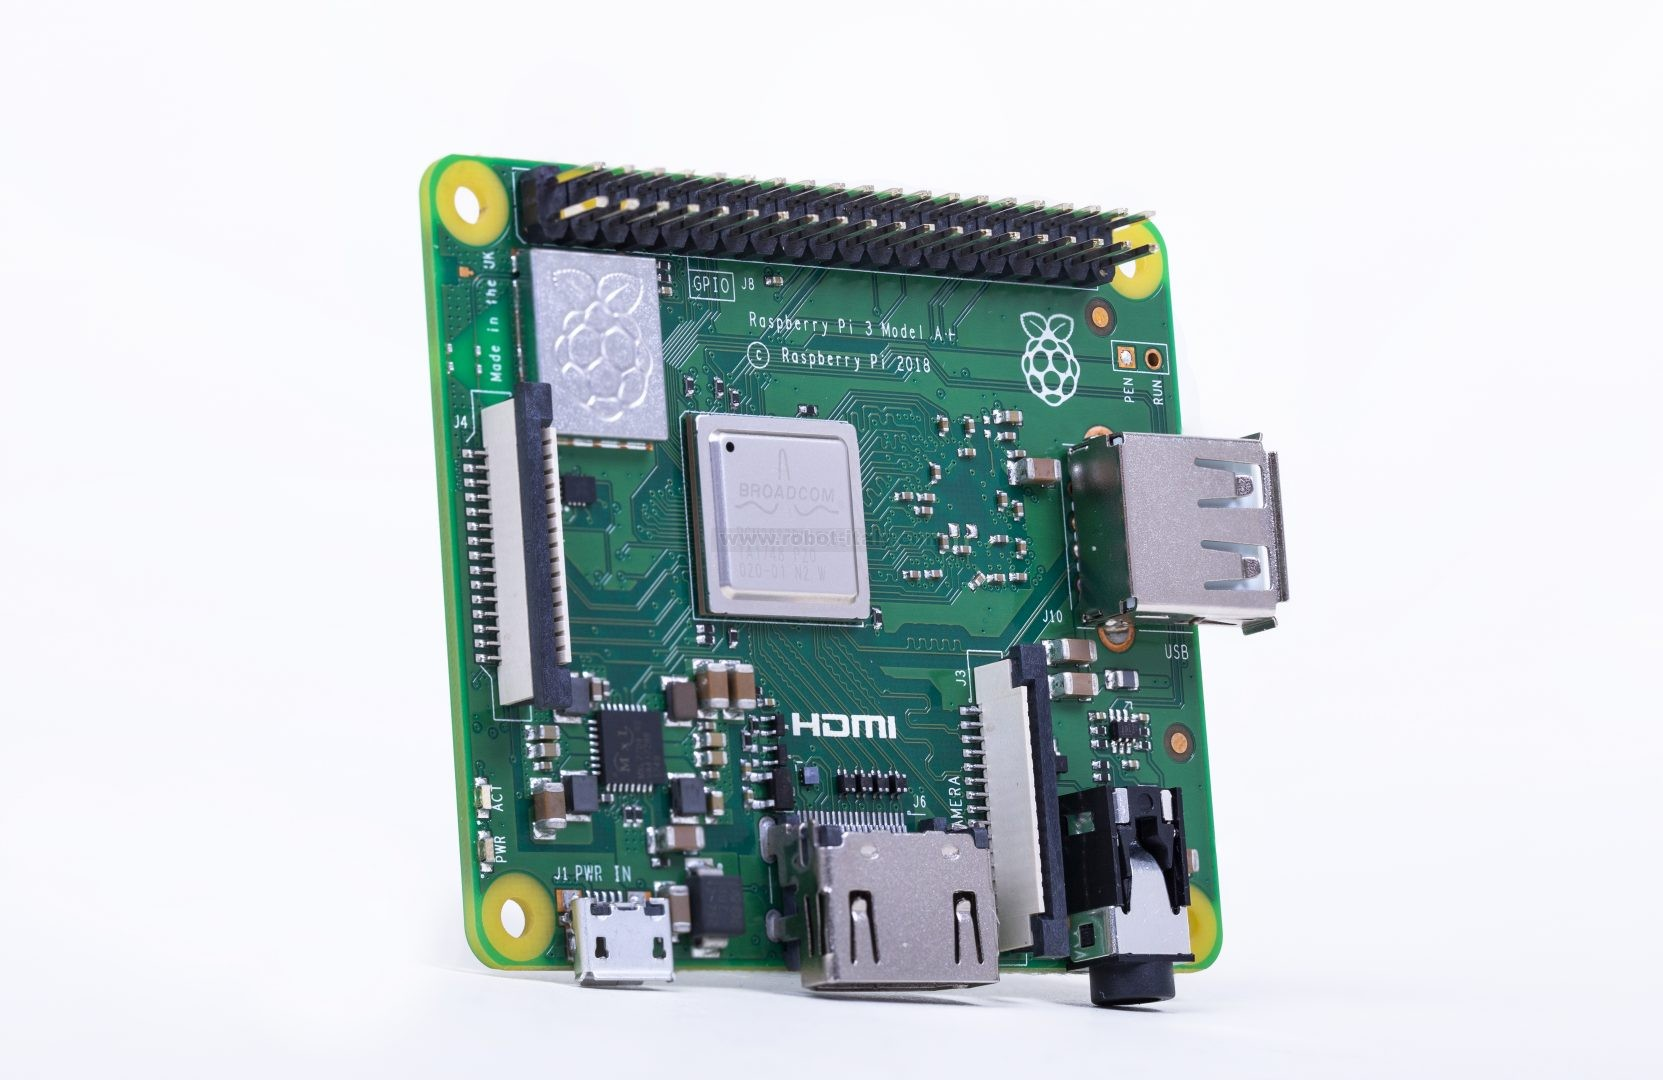 Raspberry Pi 3 Model A+- 1 4GHz 64-bit quad-core processor